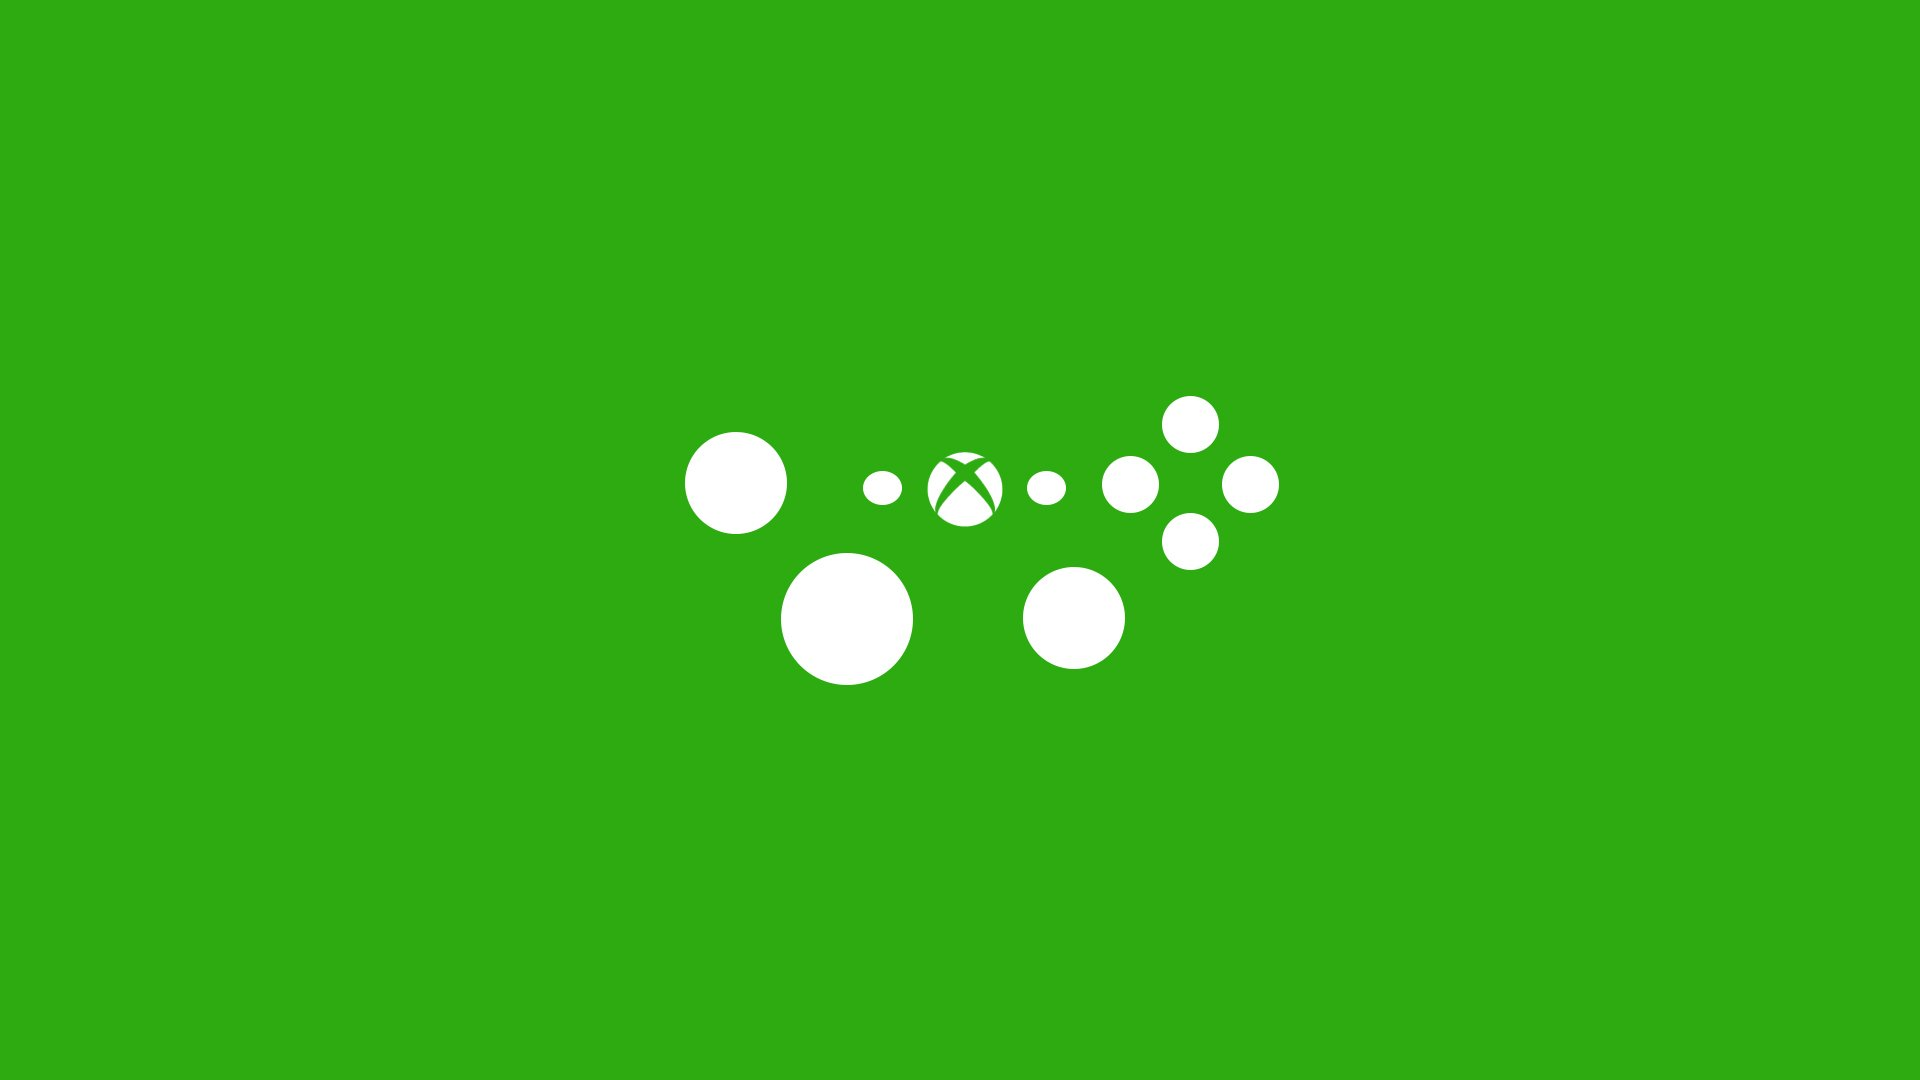 49 xbox controller wallpaper on wallpapersafari - Xbox one wallpaper 1920x1080 ...